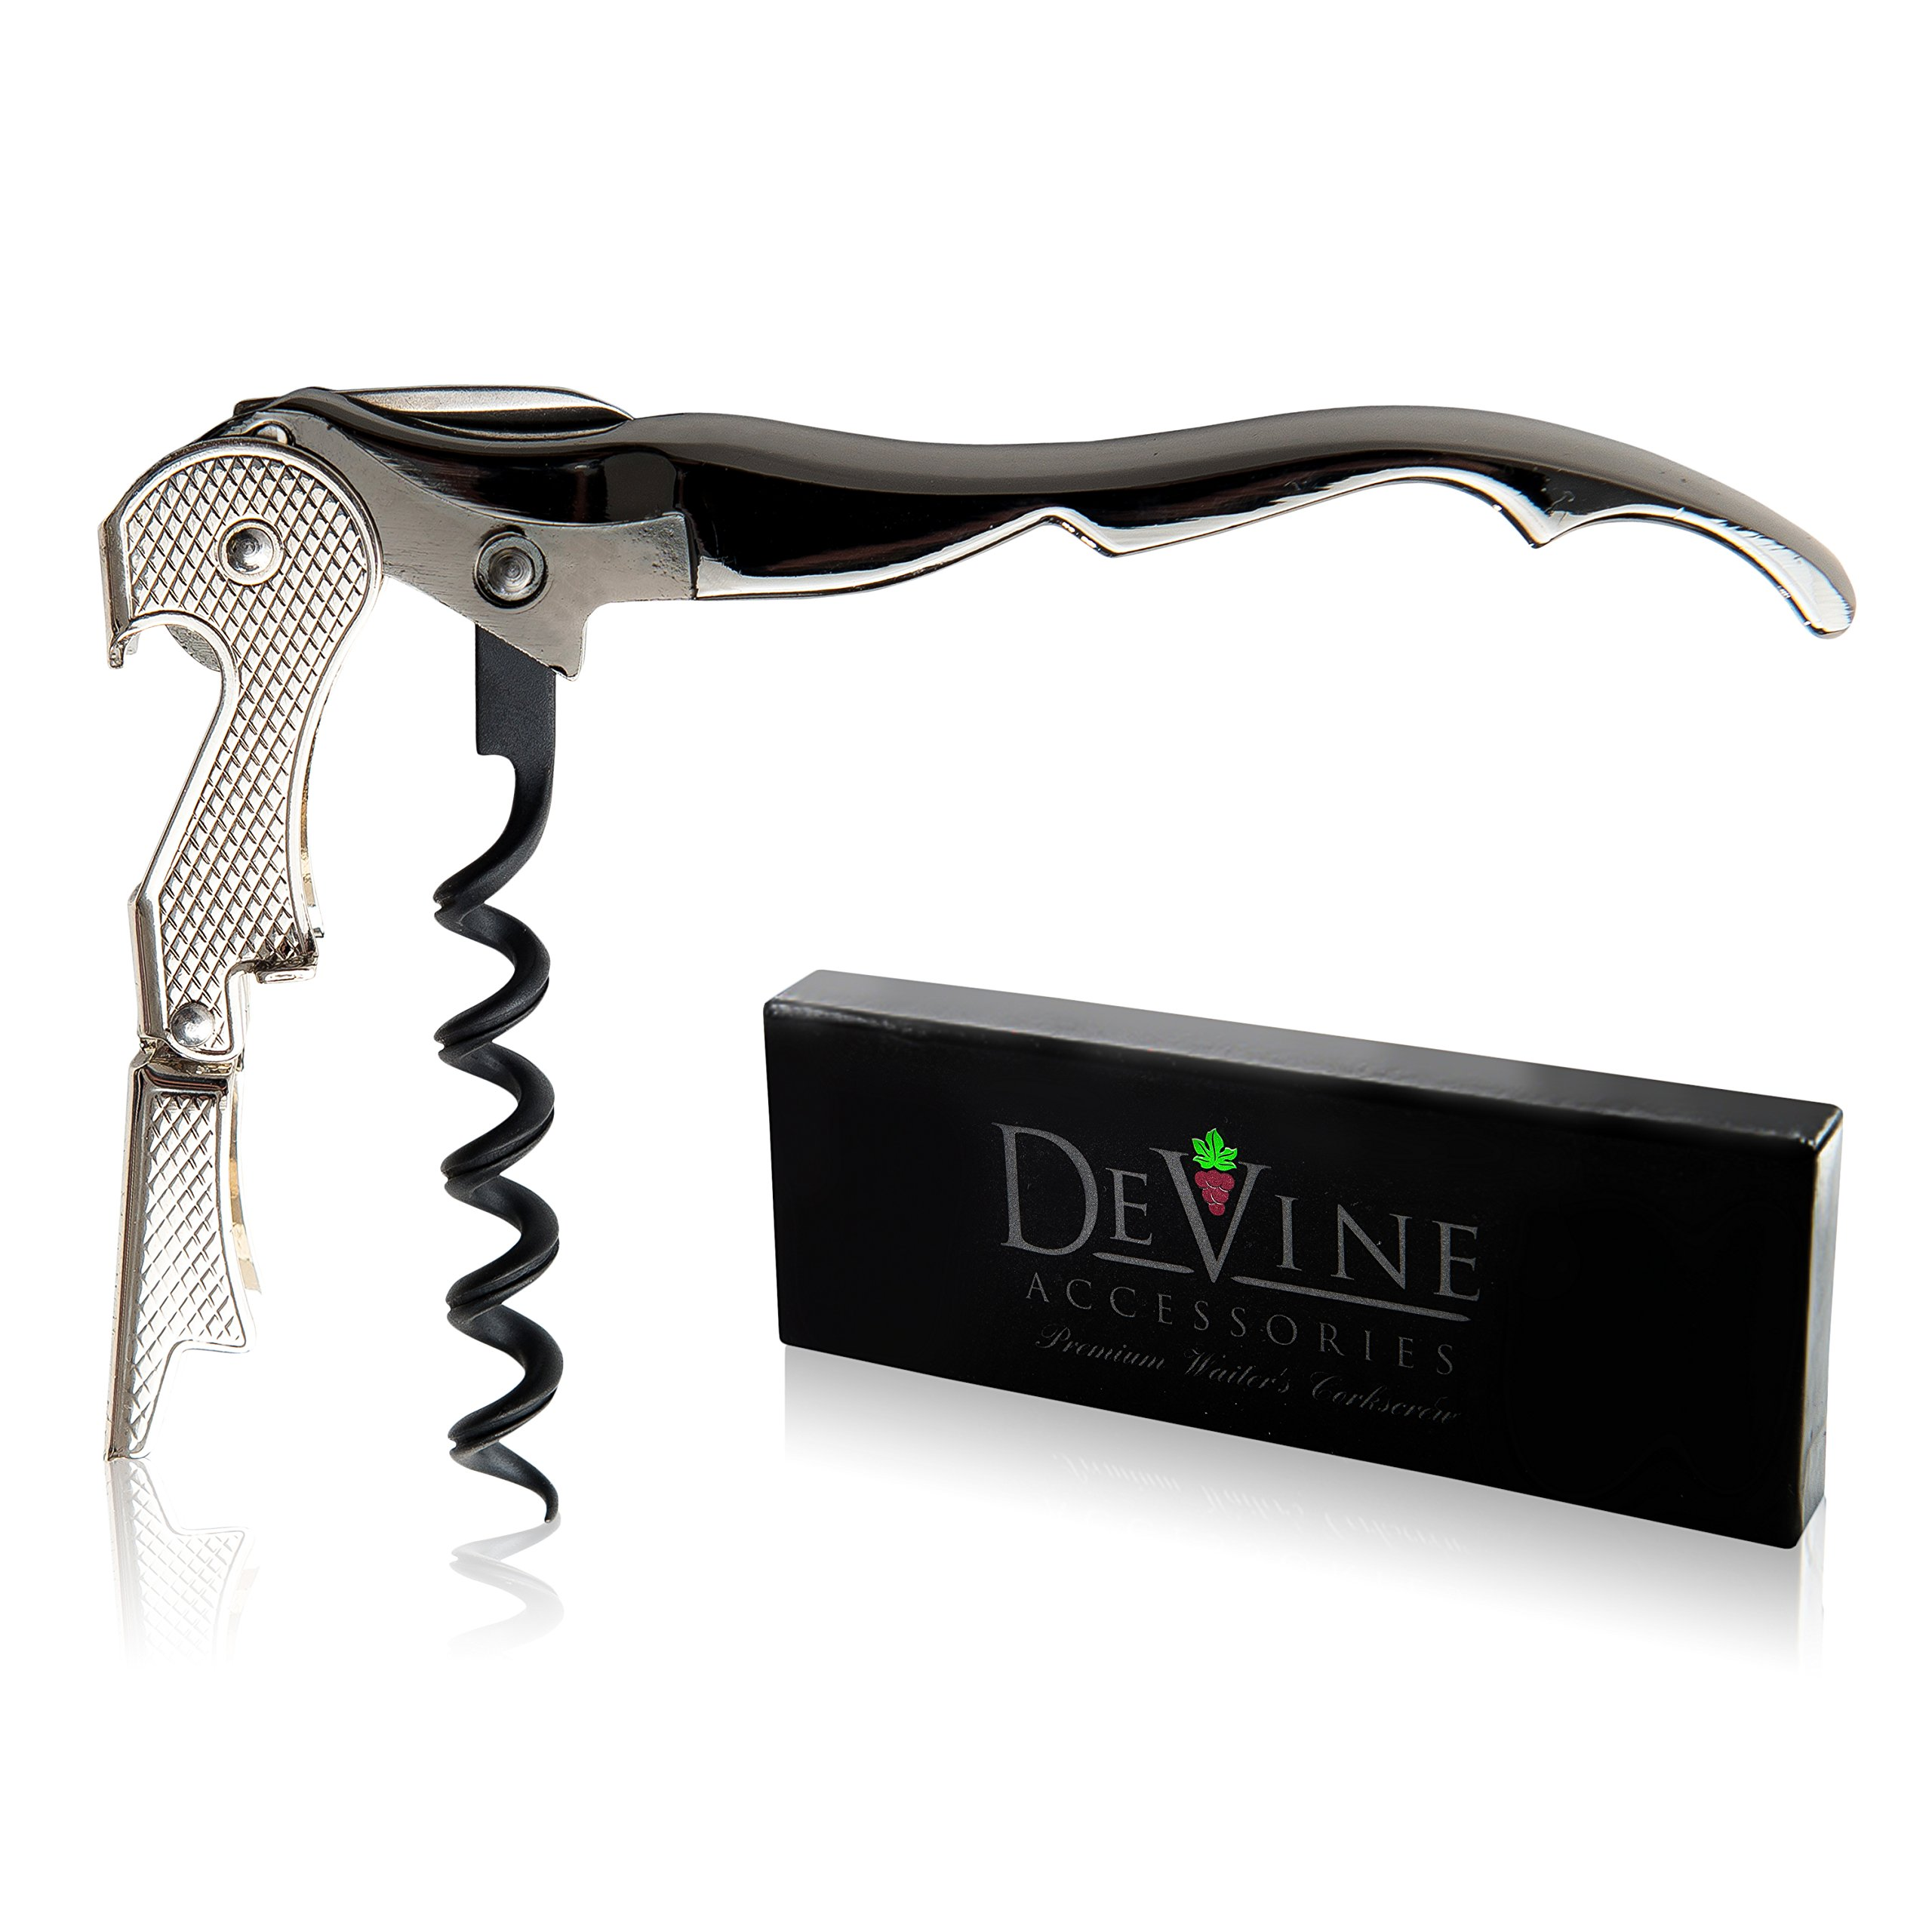 Premium Waiter's Corkscrew – Professional Grade Handheld Wine and Bottle Opener with Metalic Handle, Double Hinged Lever and Foil Cutter - by DeVine Accessories